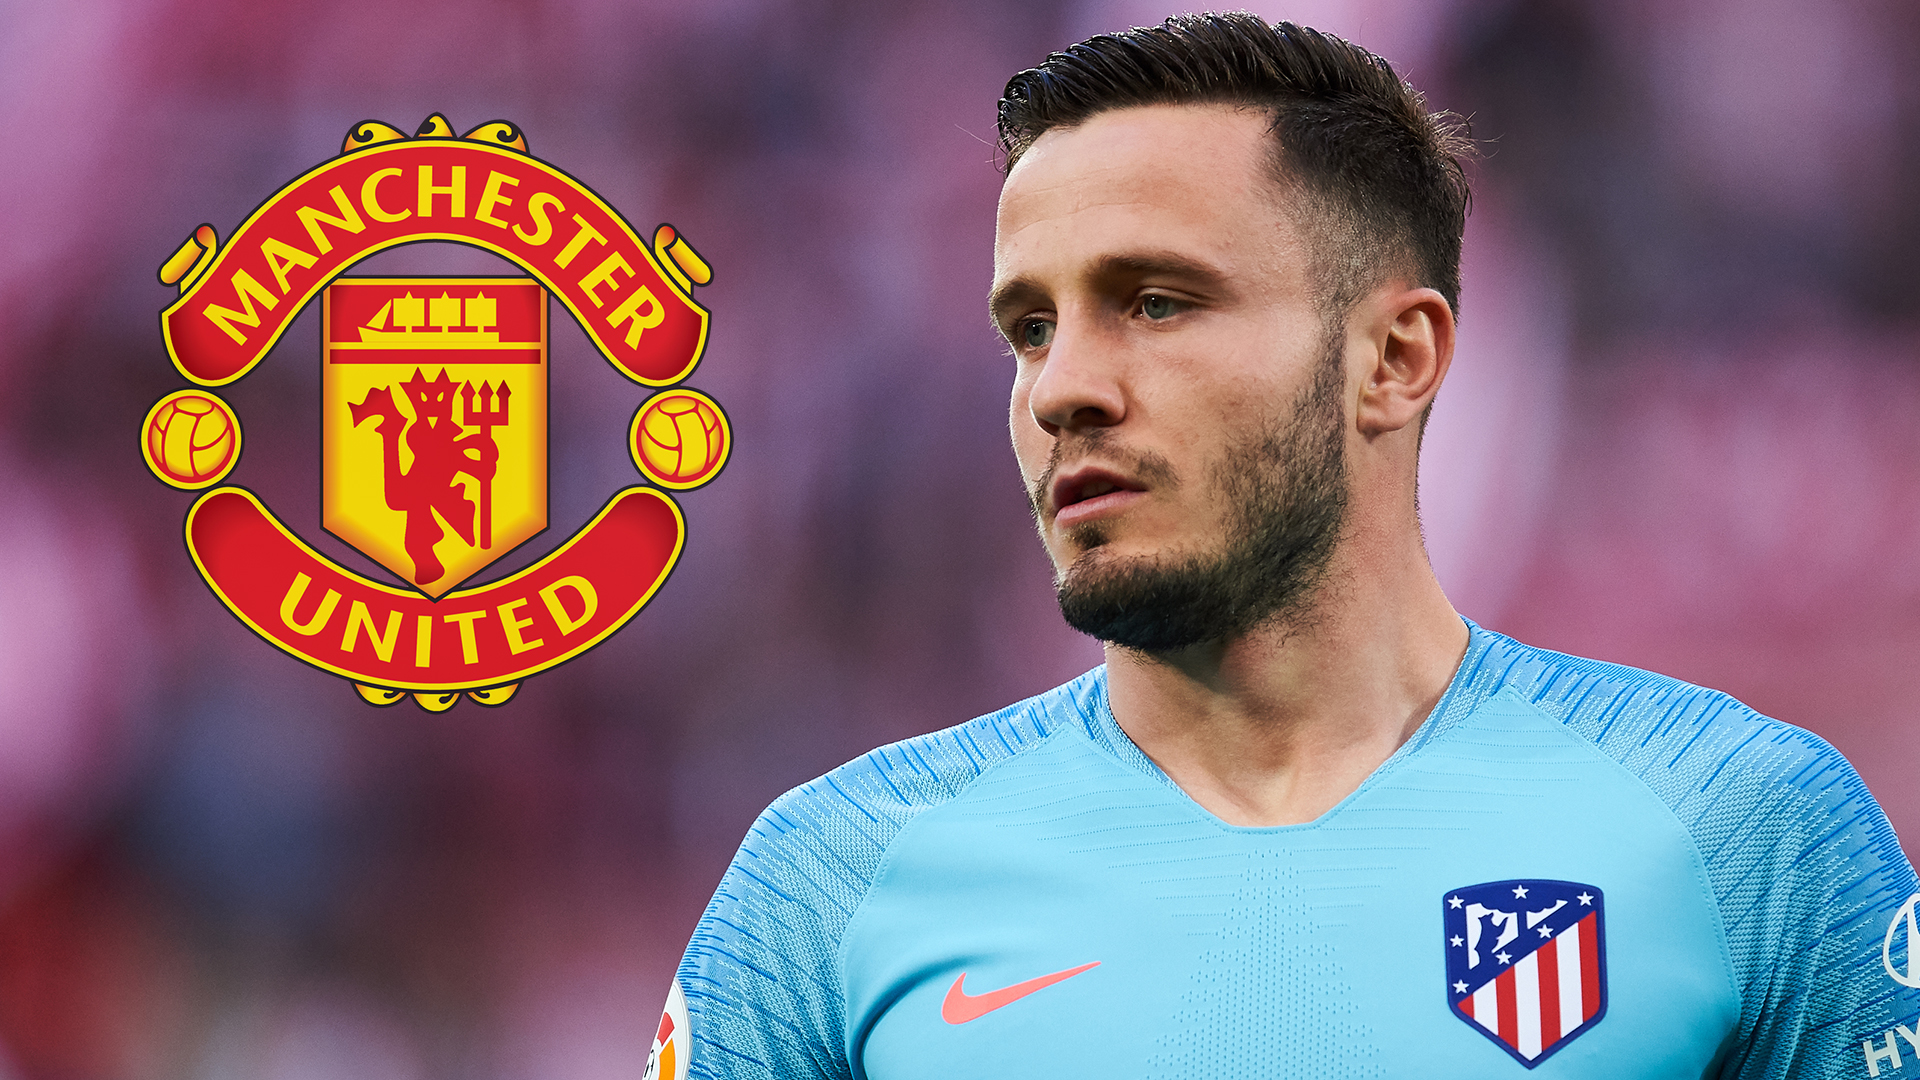 Atletico midfielder Saul Niguez teases 'new club' announcement amid Manchester United links